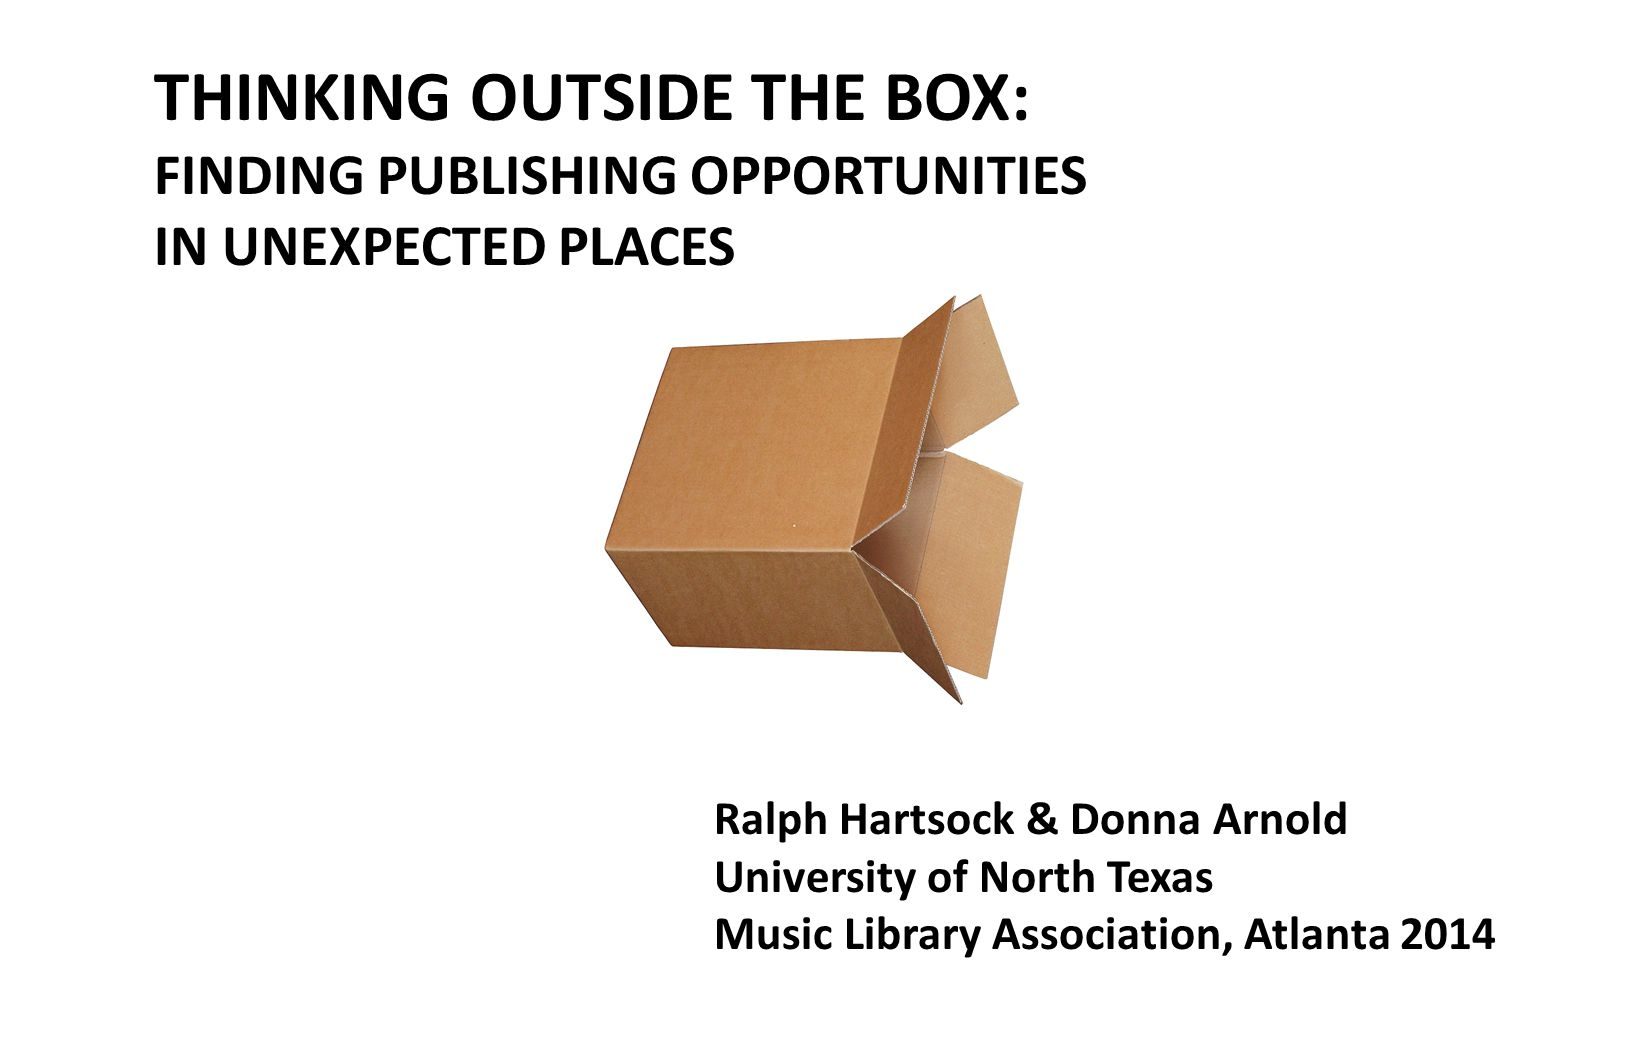 THINKING OUTSIDE THE BOX: FINDING PUBLISHING OPPORTUNITIES IN UNEXPECTED PLACES Ralph Hartsock & Donna Arnold University of North Texas Music Library Association, Atlanta 2014